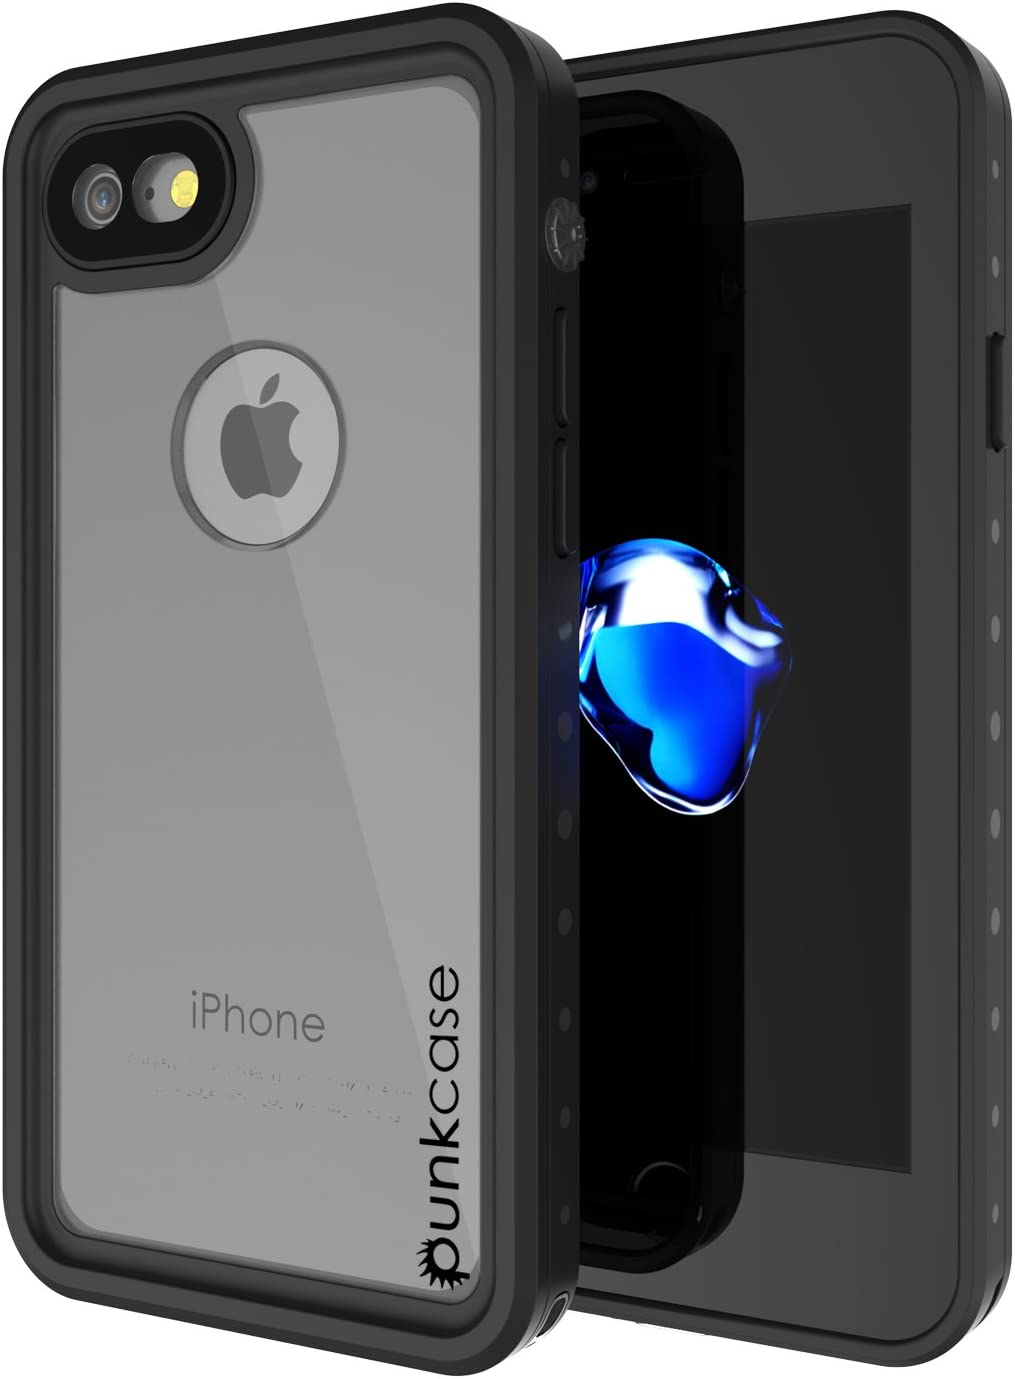 iPhone 8 Waterproof Case, Punkcase [StudStar Series] [Slim Fit] [IP68 Certified] [Shockproof] [Dirtproof] [Snowproof] Universal Armor Cover for Apple iPhone 7 & 8 [Clear]